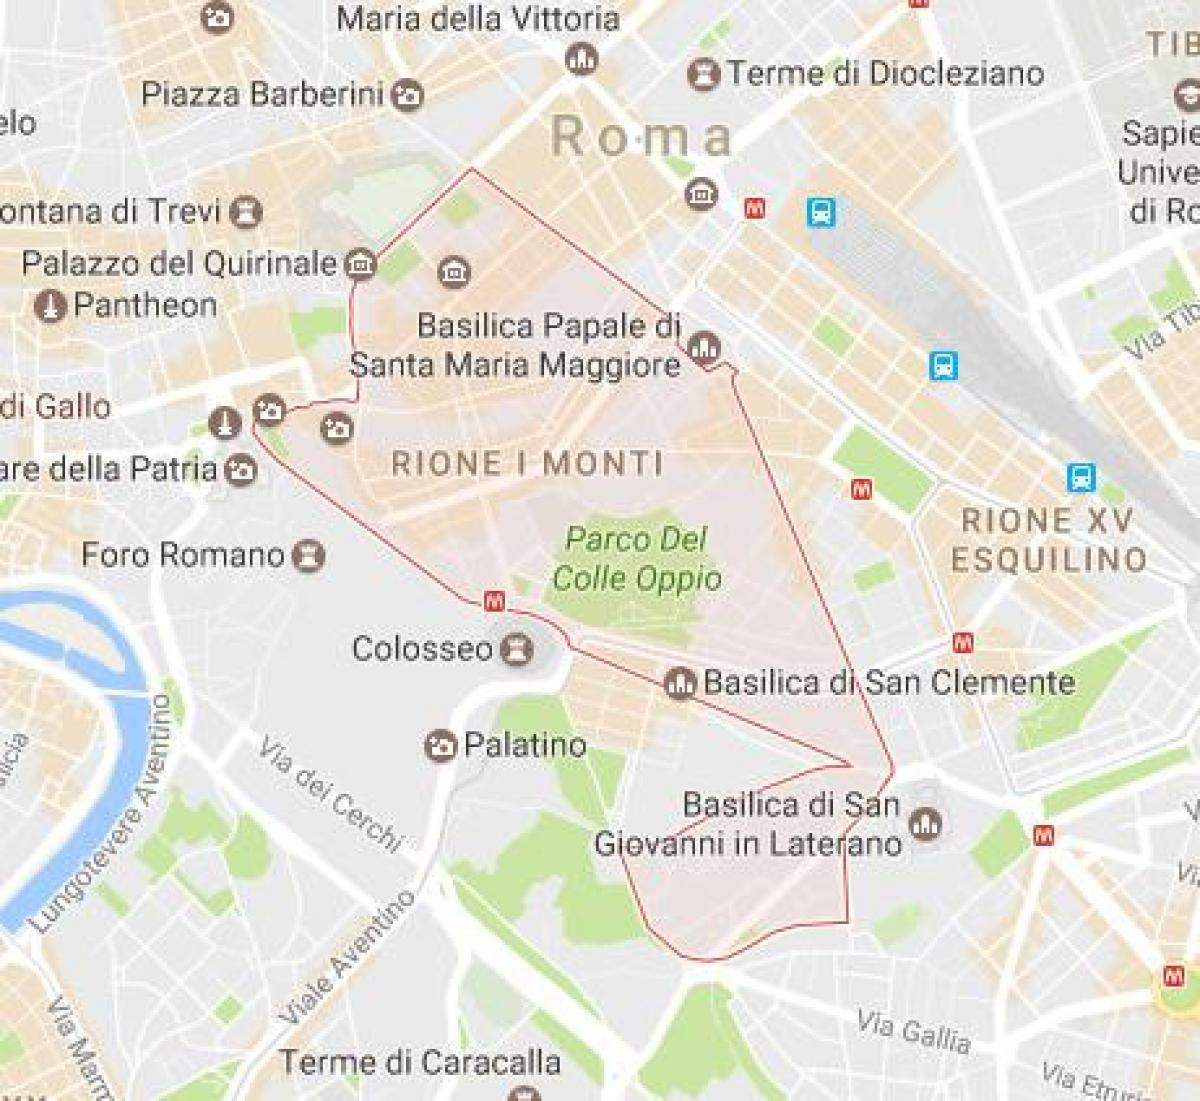 Map of monti Rome